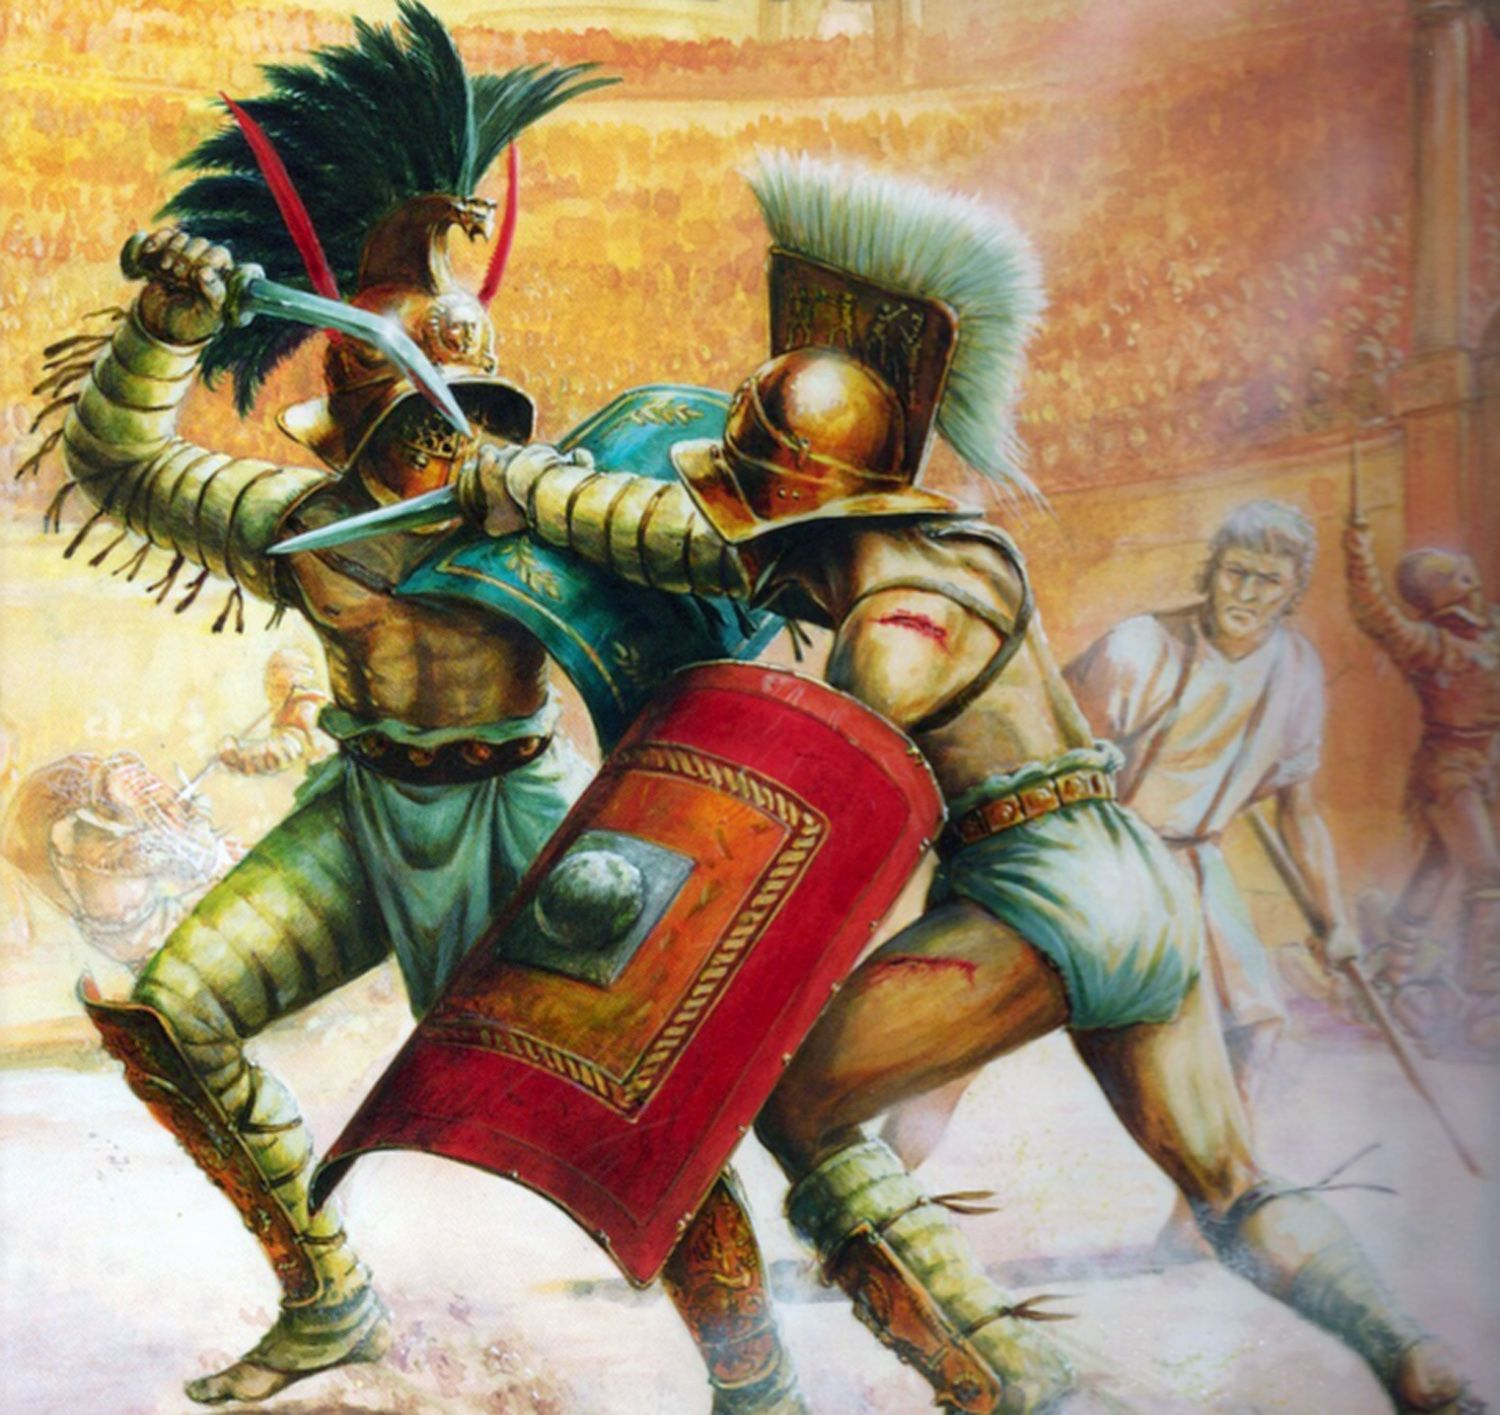 an introduction to the history of the roman gladiators Ancient rome was home to gleaming white marble temples, lavish palaces and spectacular gladiator shows with over one million people living there, the city was also a dirty and dangerous place.